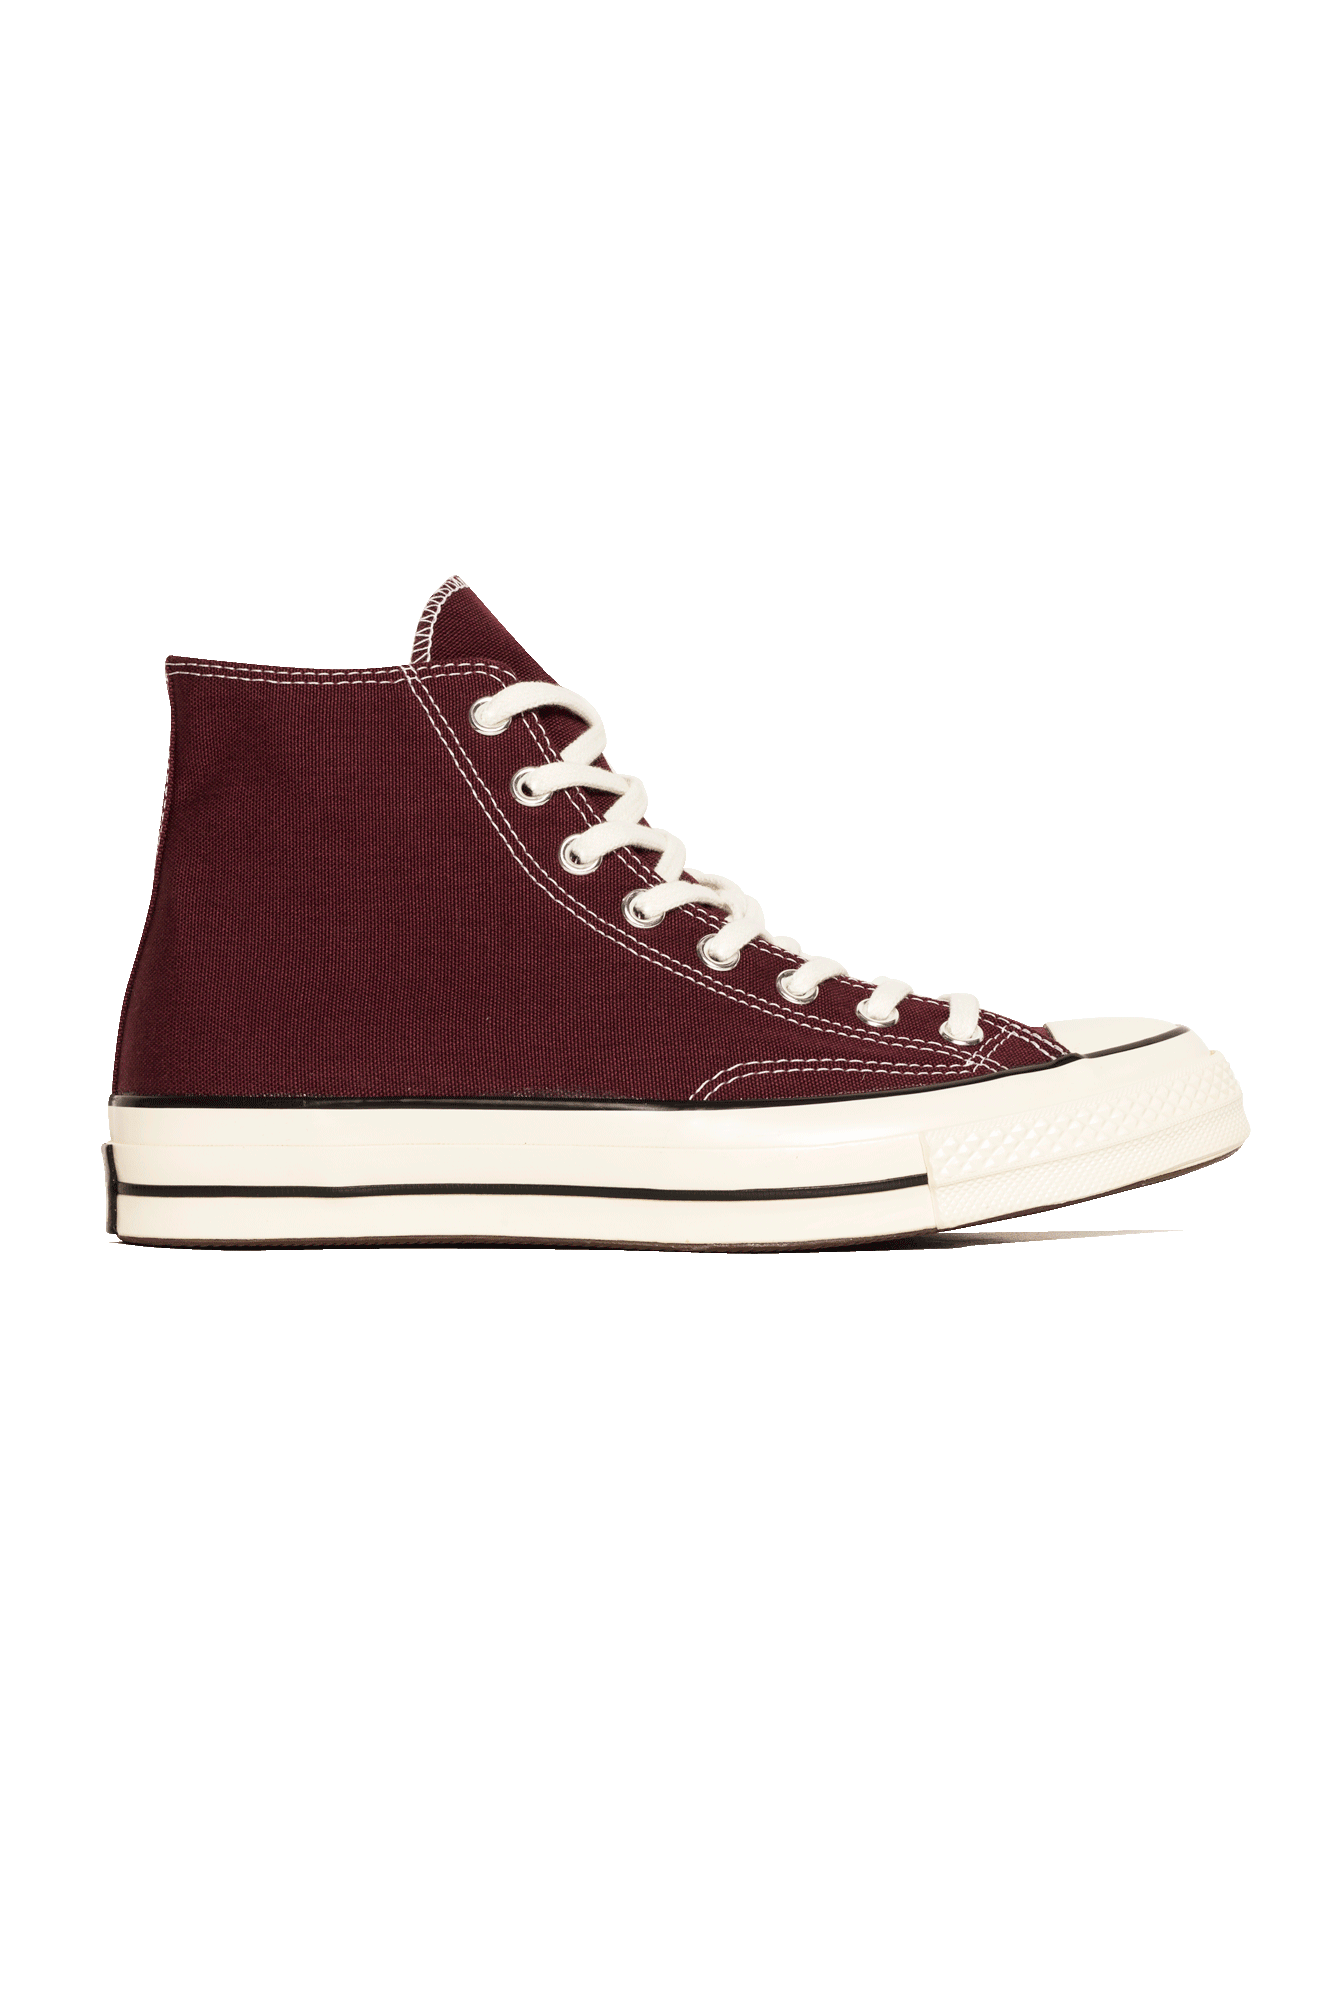 Converse Sneakers All star prem HI 1970's canvas Rosso 146974C#000#C0012#8 - One Block Down